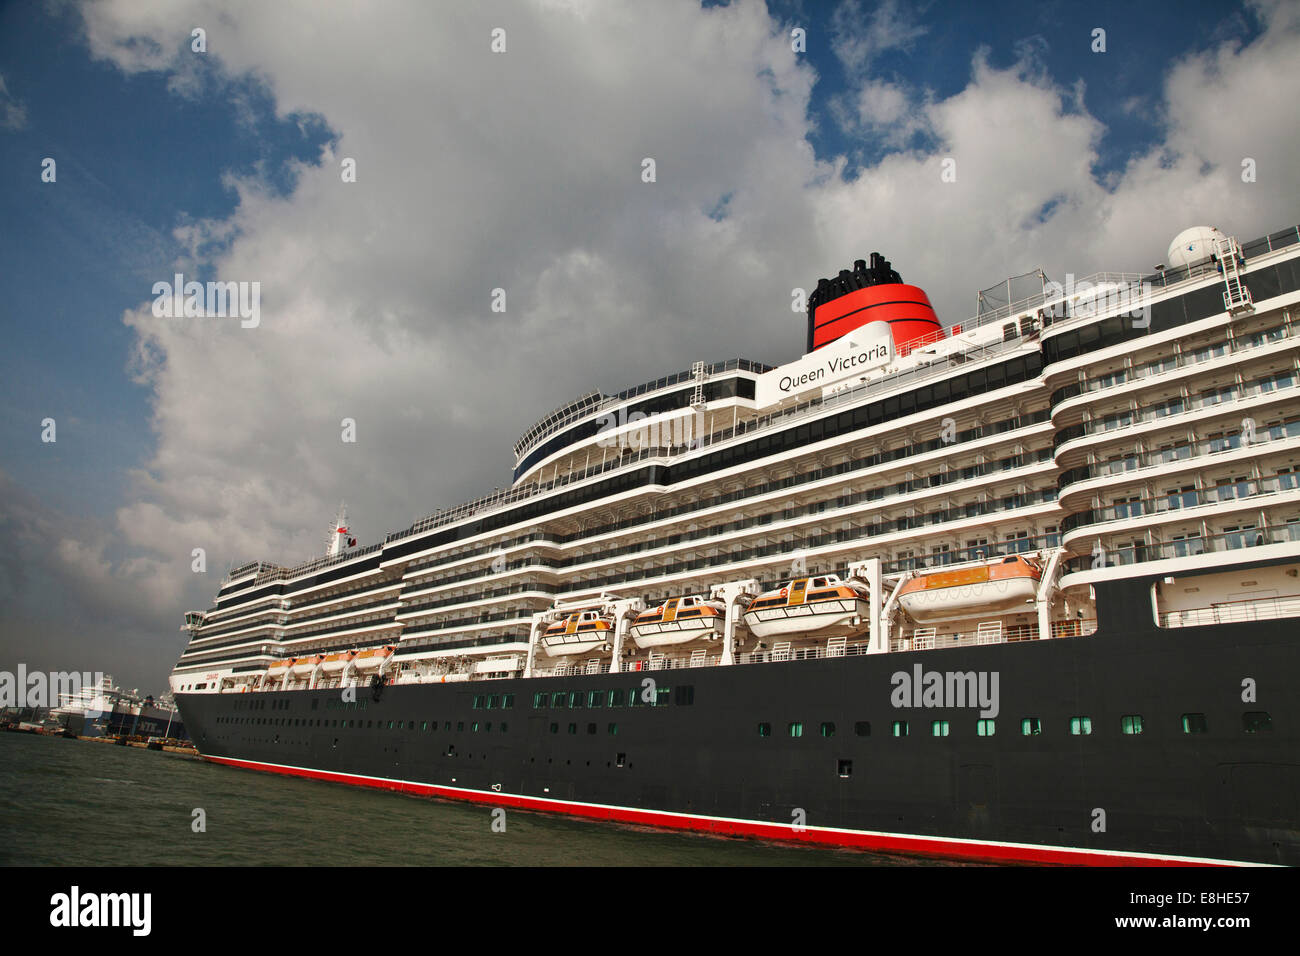 The Cunard  Cruise liner Queen Elizabeth 2 at dock in Southampton Water - Stock Image